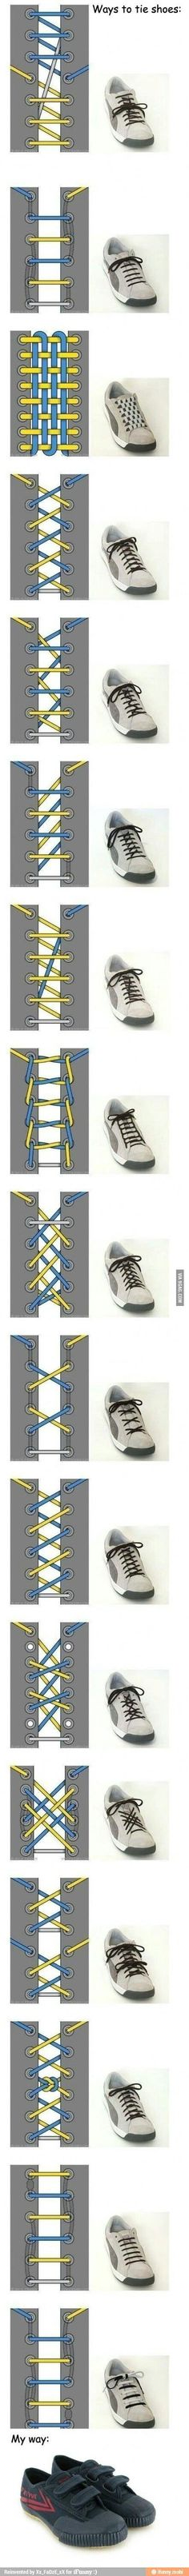 LOL... this brings back tons of reminders about my sons youth and his obsession with shoes. How to tie your shoes like a boss